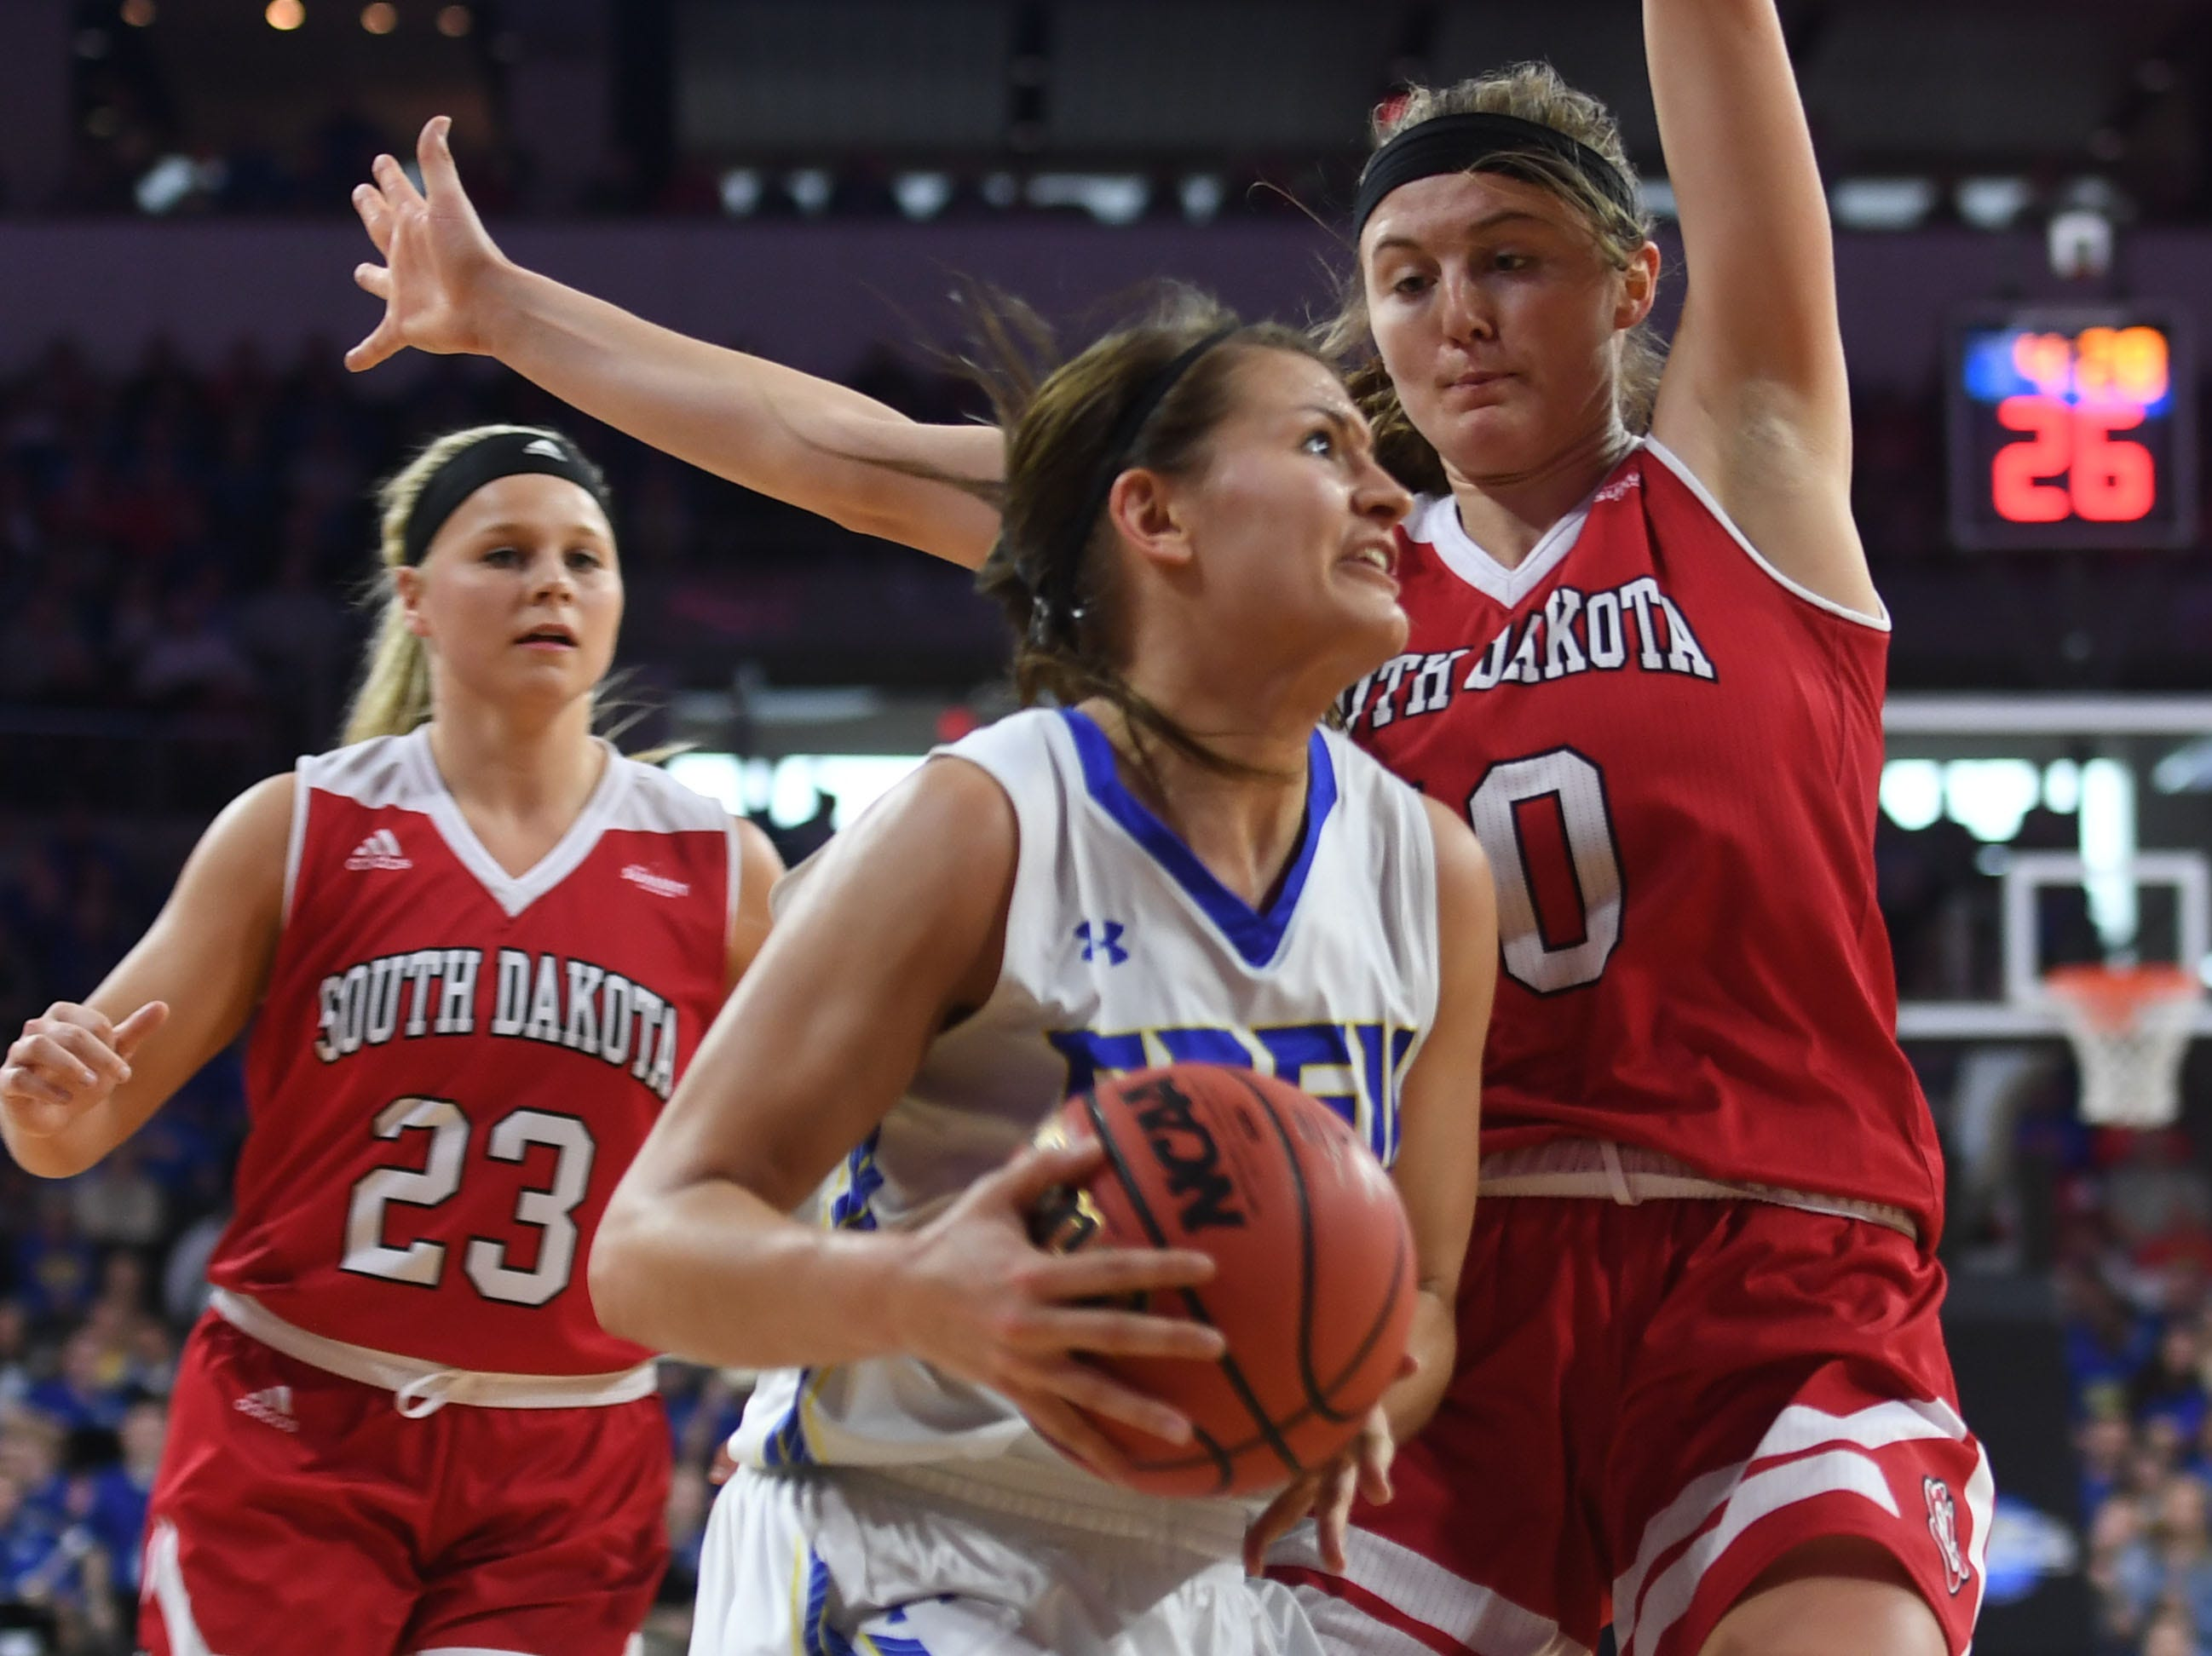 SDSU's Macy Miller goes against USD's Allison Arens during the game Tuesday, March 12, in the Summit League women's championship at the Denny Sanford Premier Center in Sioux Falls.